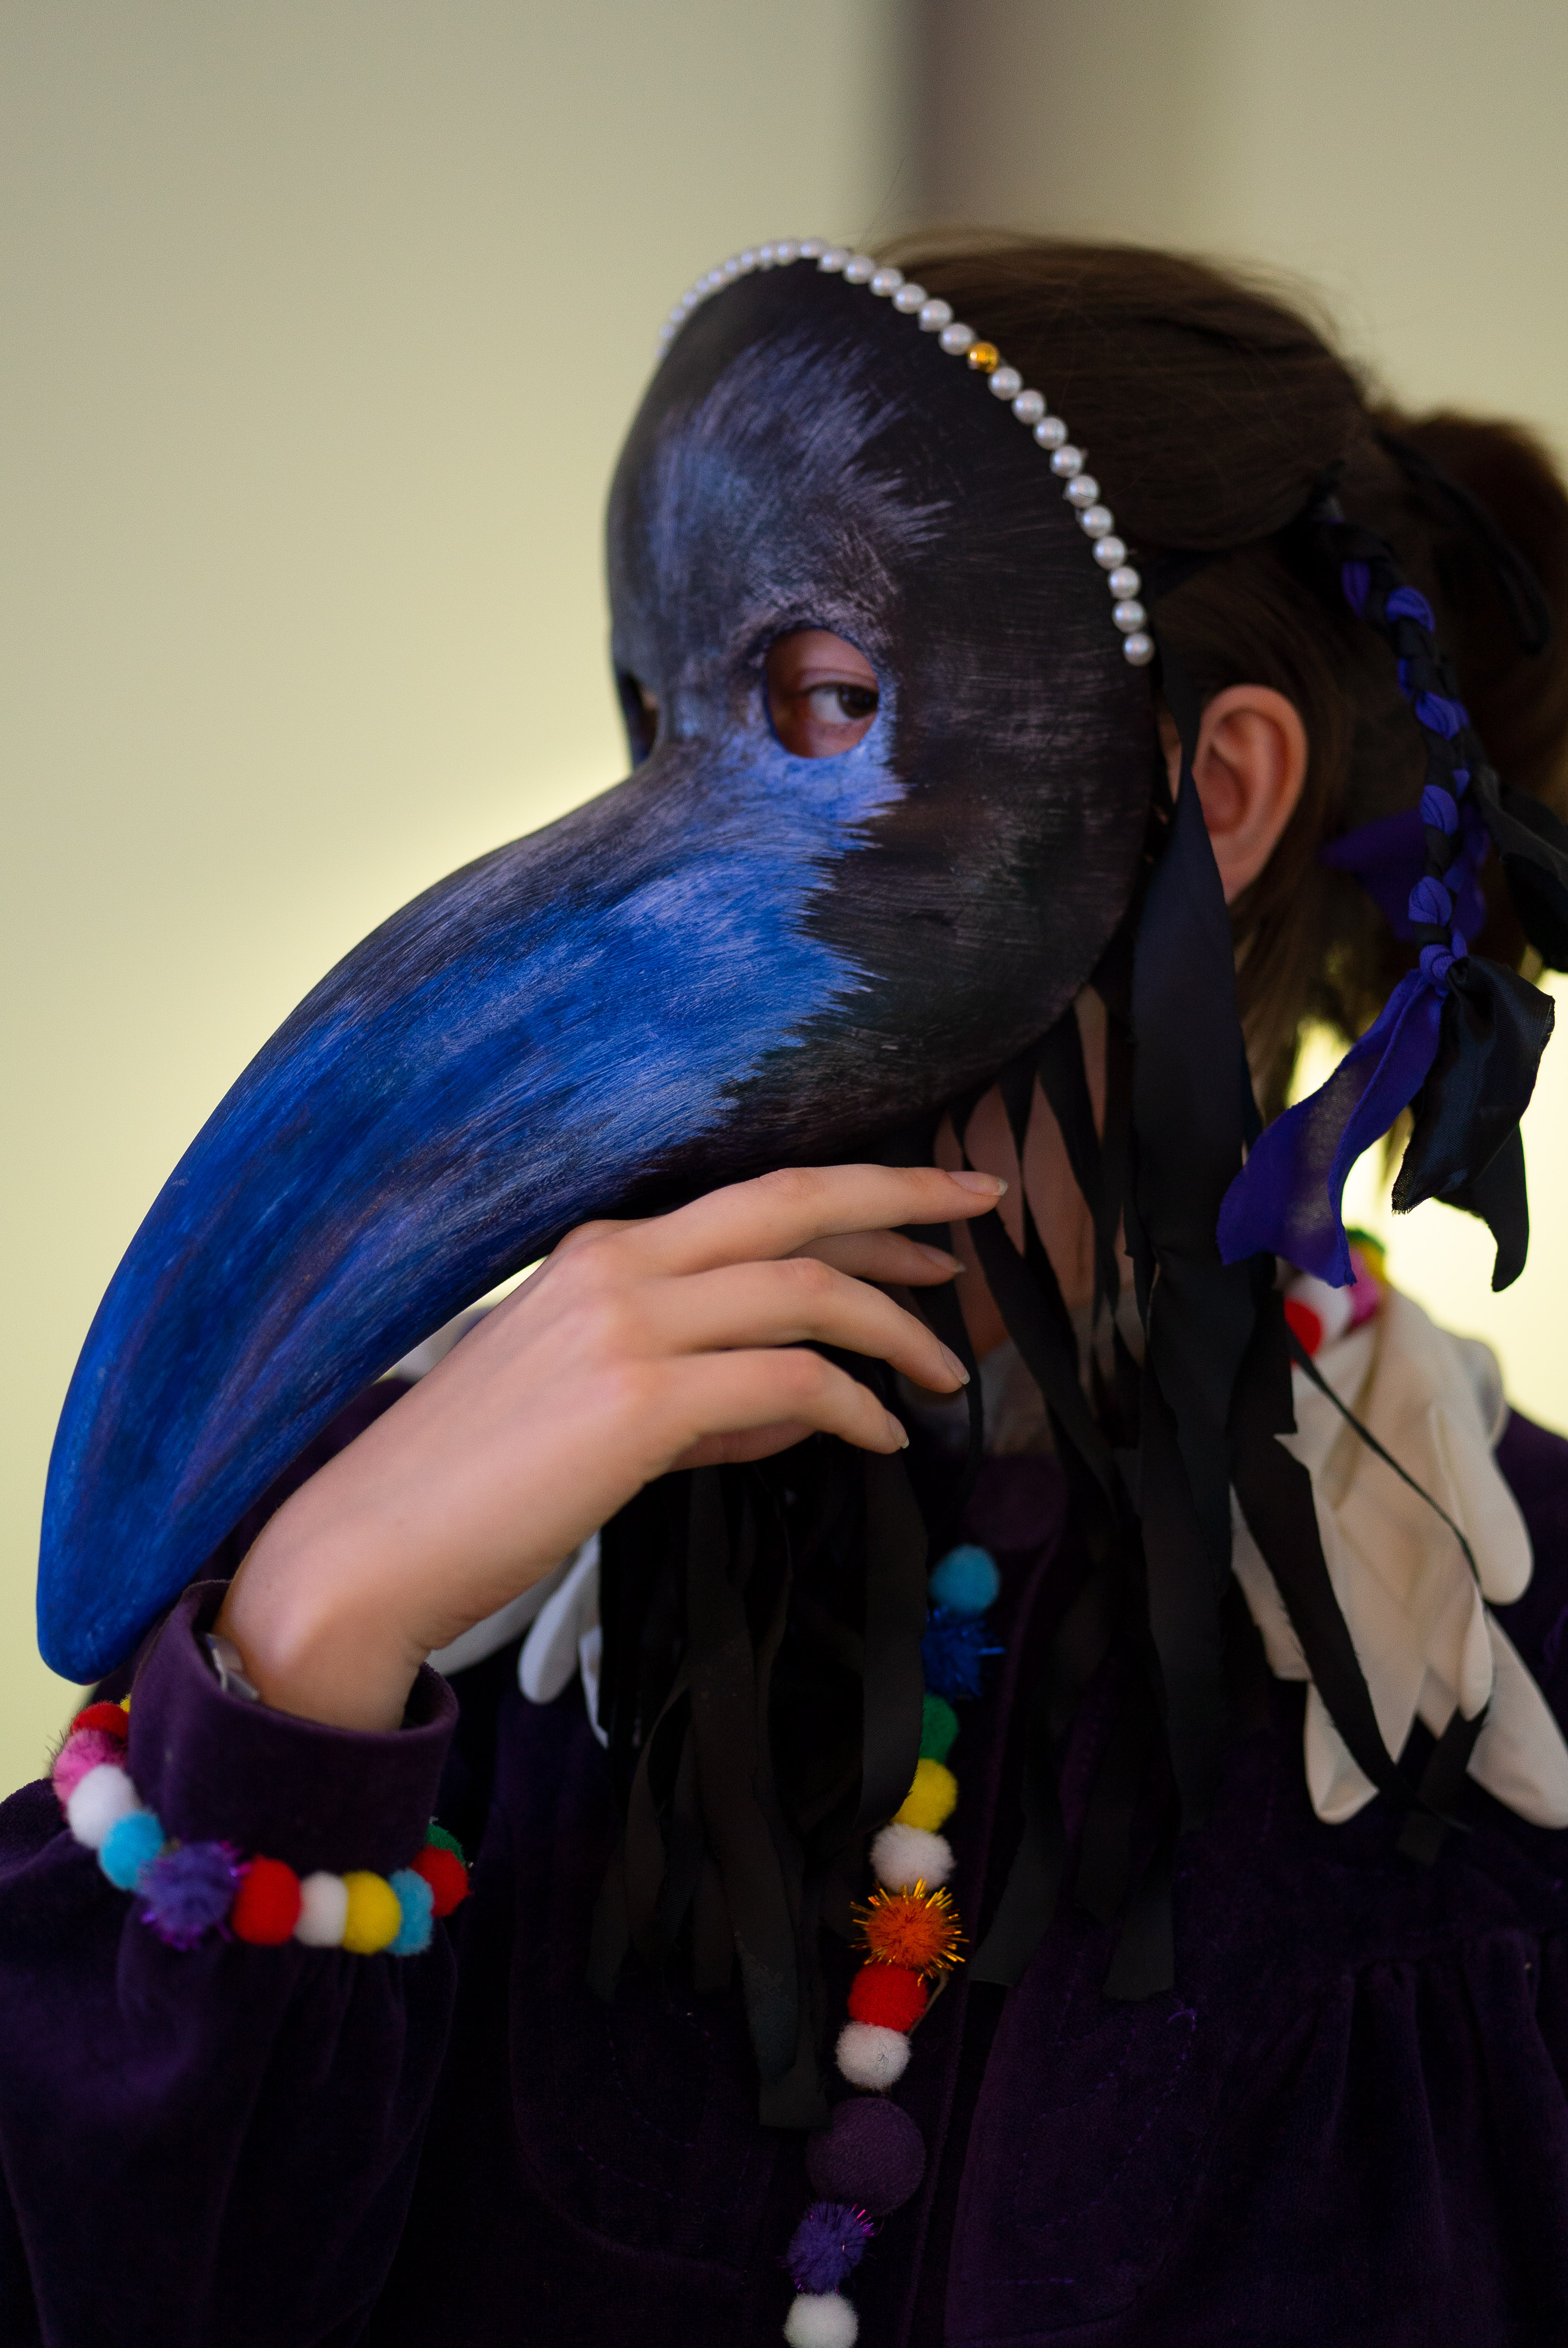 The photo is a close-up of a side profile of a person wearing a plague doctor mask. The mask is painted with black and blue paint, the upper edge of the mask is decorated with white pearls. The person is wearing a purple velvet coat decorated with colorful fabric balls on the cuffs and button closures. They hold their right hand under the beak of the mask. The eye visible under the mask looks directly into the camera.